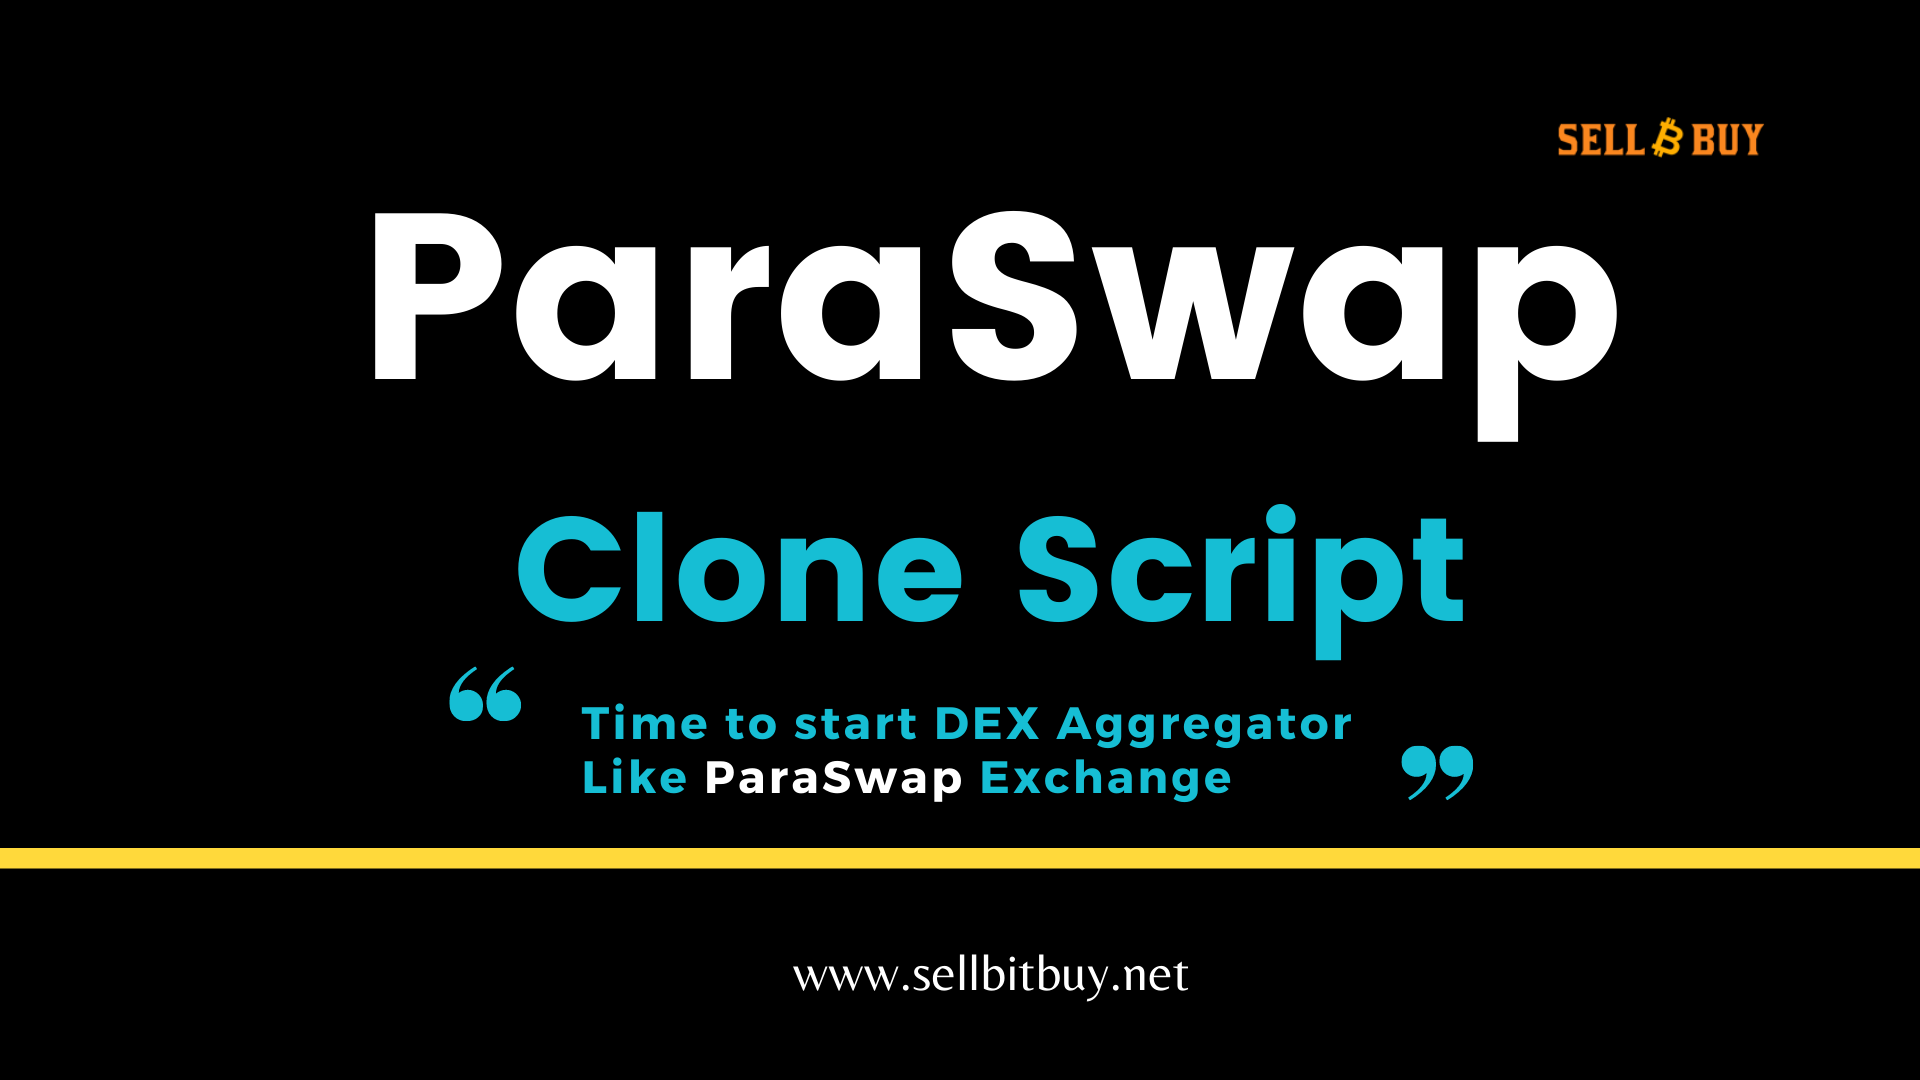 Paraswap Clone Script - A DeFi Solution To Launch a Billion Dollar Worth DeFi Aggrgator Platform